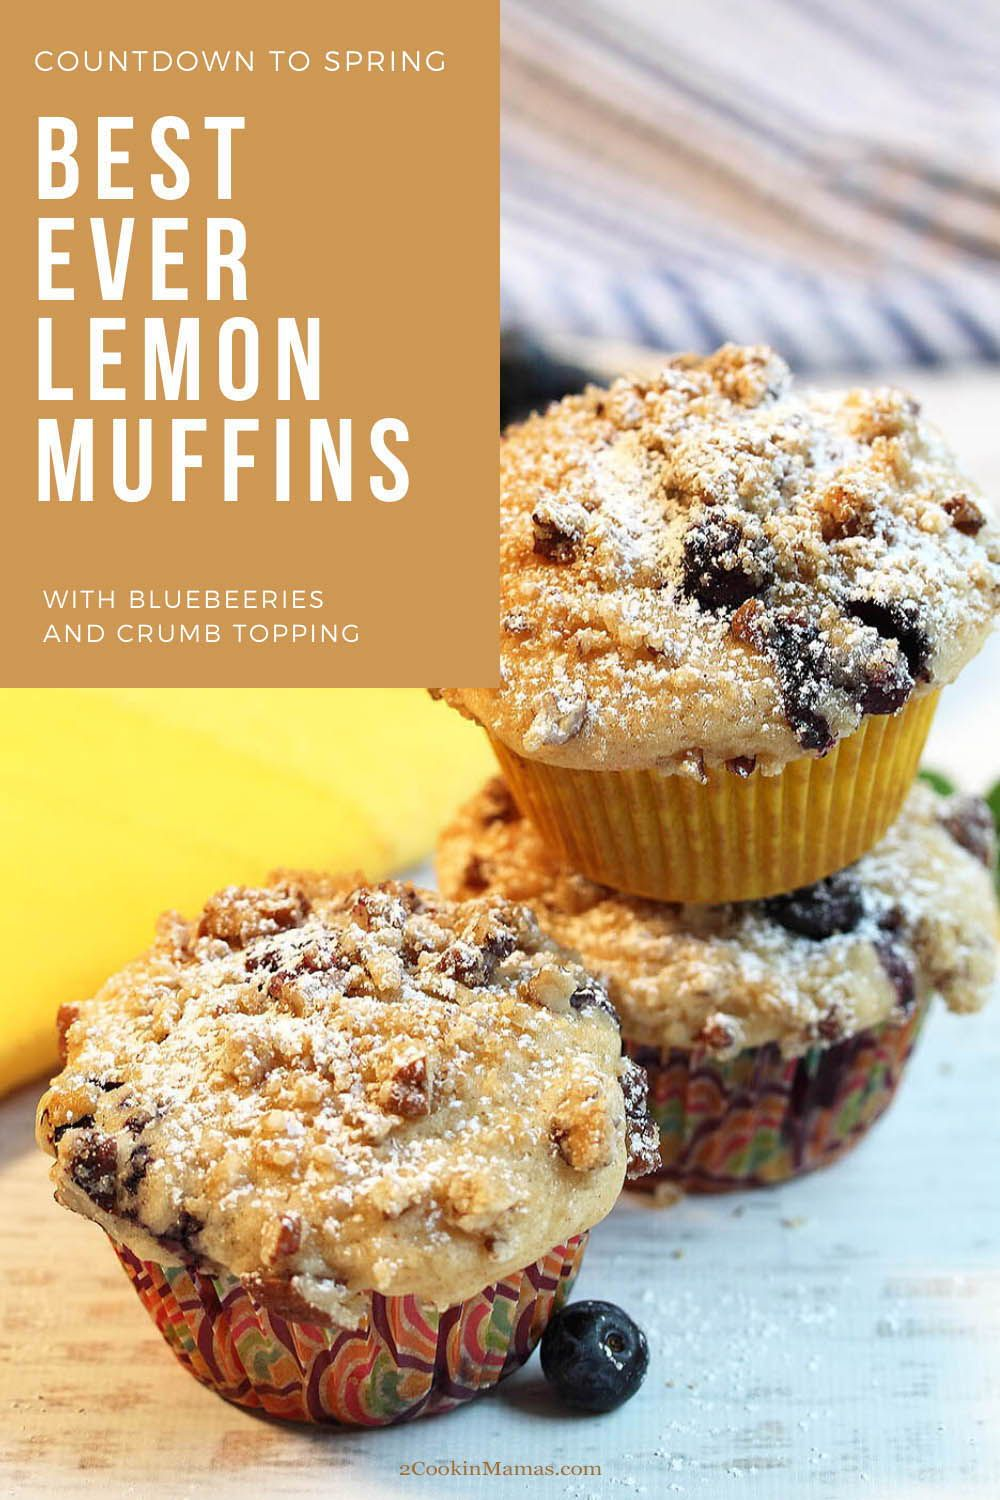 Lemon Blueberry Muffins With Streusel Topping Recipe In 2020 Lemon Muffins Lemon Blueberry Muffins Recipe Homemade Muffins